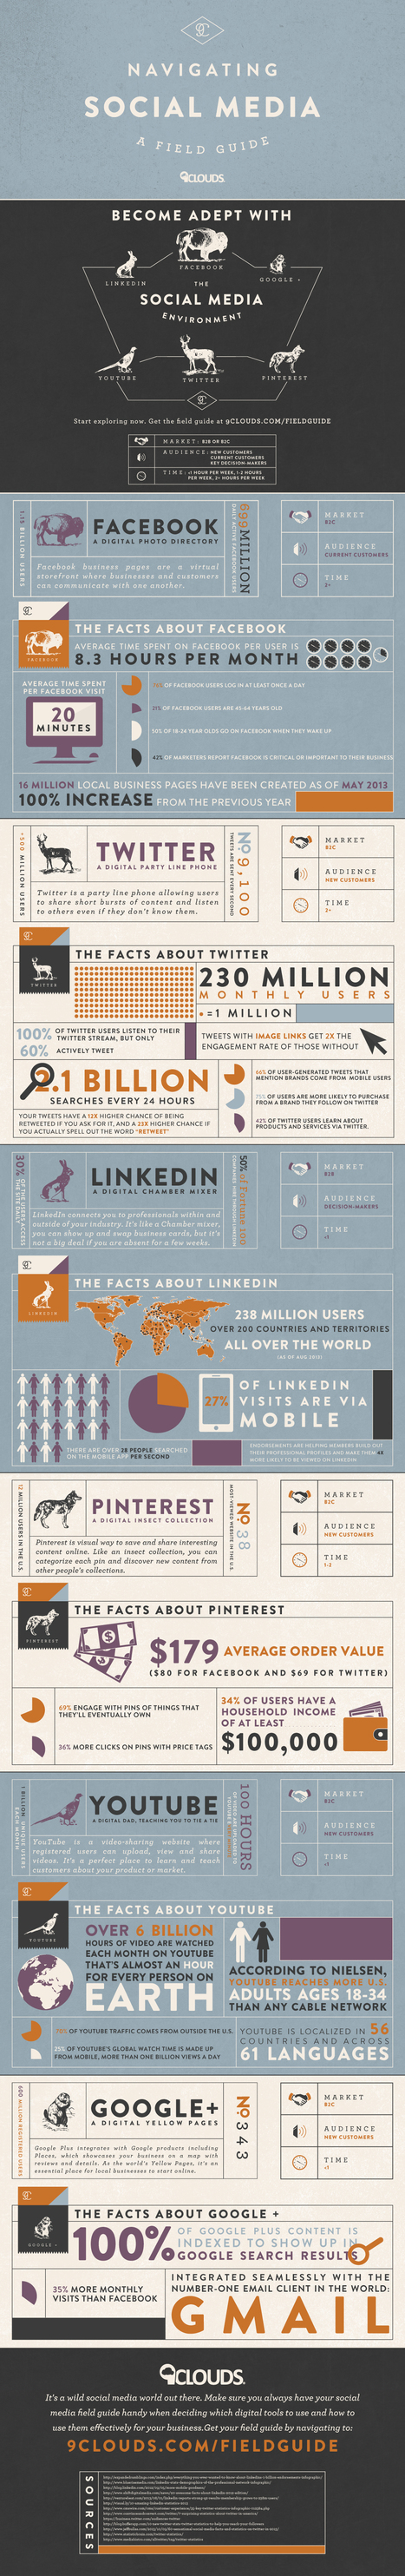 An Infographic Field Guide to Navigating Social Media | Online World | Scoop.it